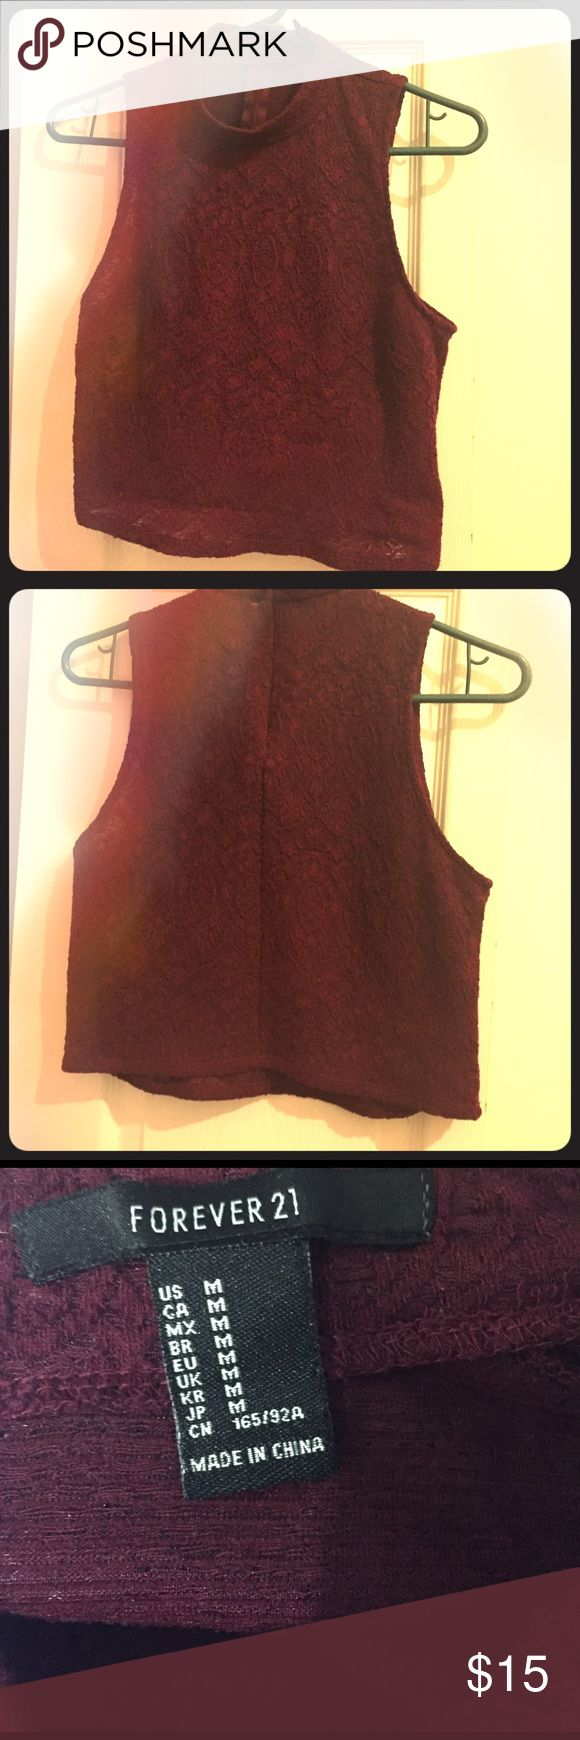 Magenta Forever 21 crop top Magenta short sleeve Forever 21 crop top with zipper in the back. Bought in 2014, but it is in very good condition. Size is medium. Forever 21 Tops Crop Tops